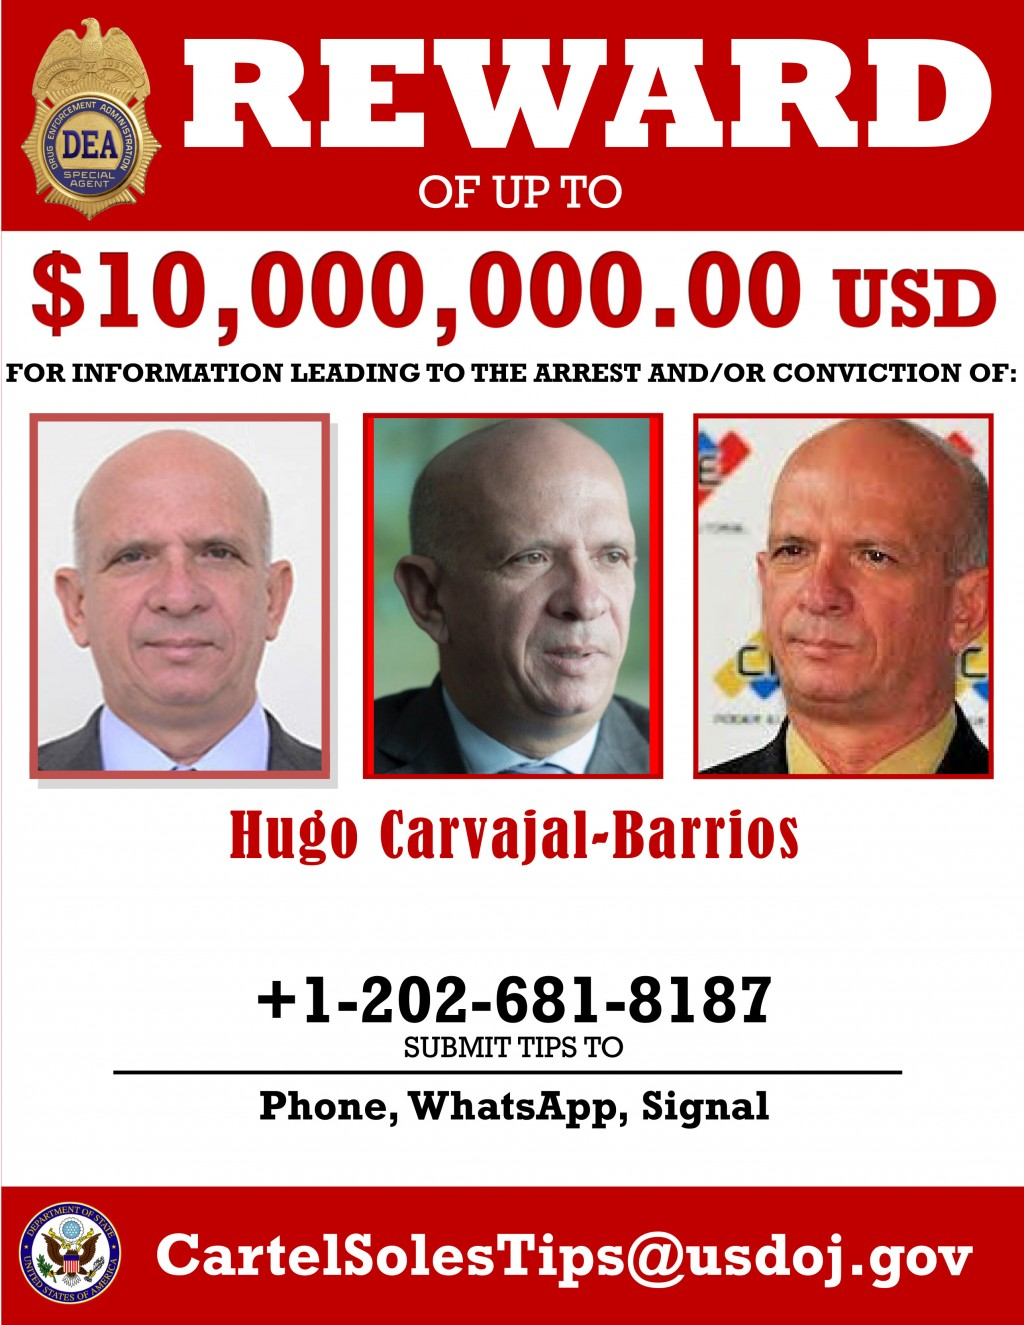 This image provided by the U.S. Department of Justice shows a reward poster for former Venezuelan military spy chief, retired Maj. Gen. Hugo Carvajal ...